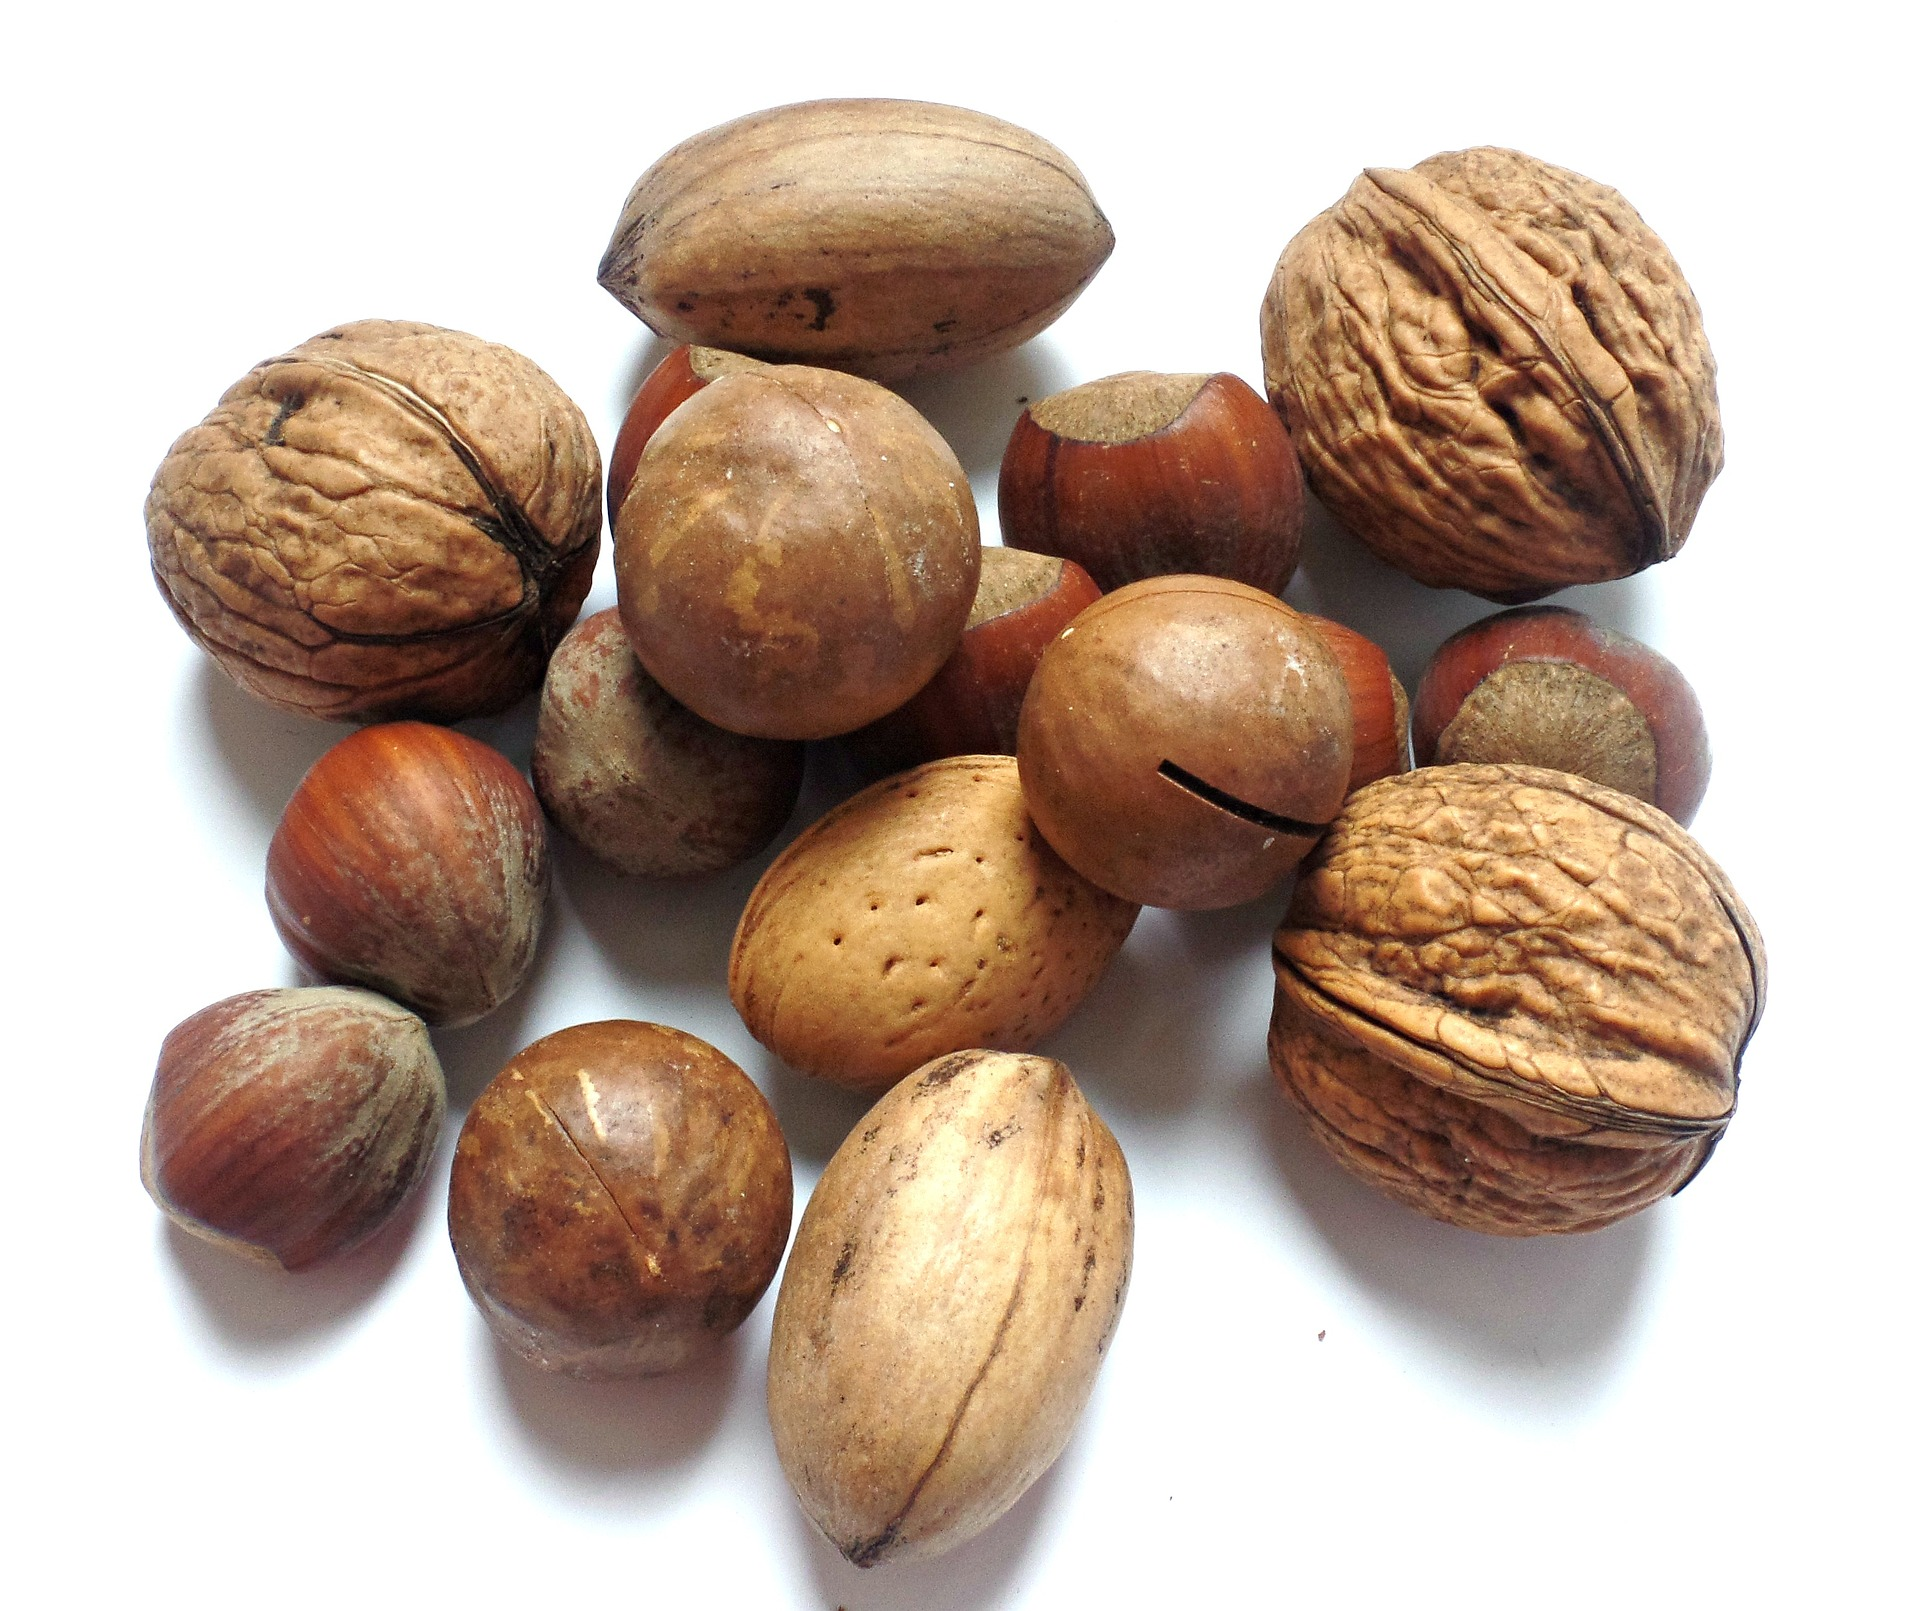 How Healthy are Nuts?